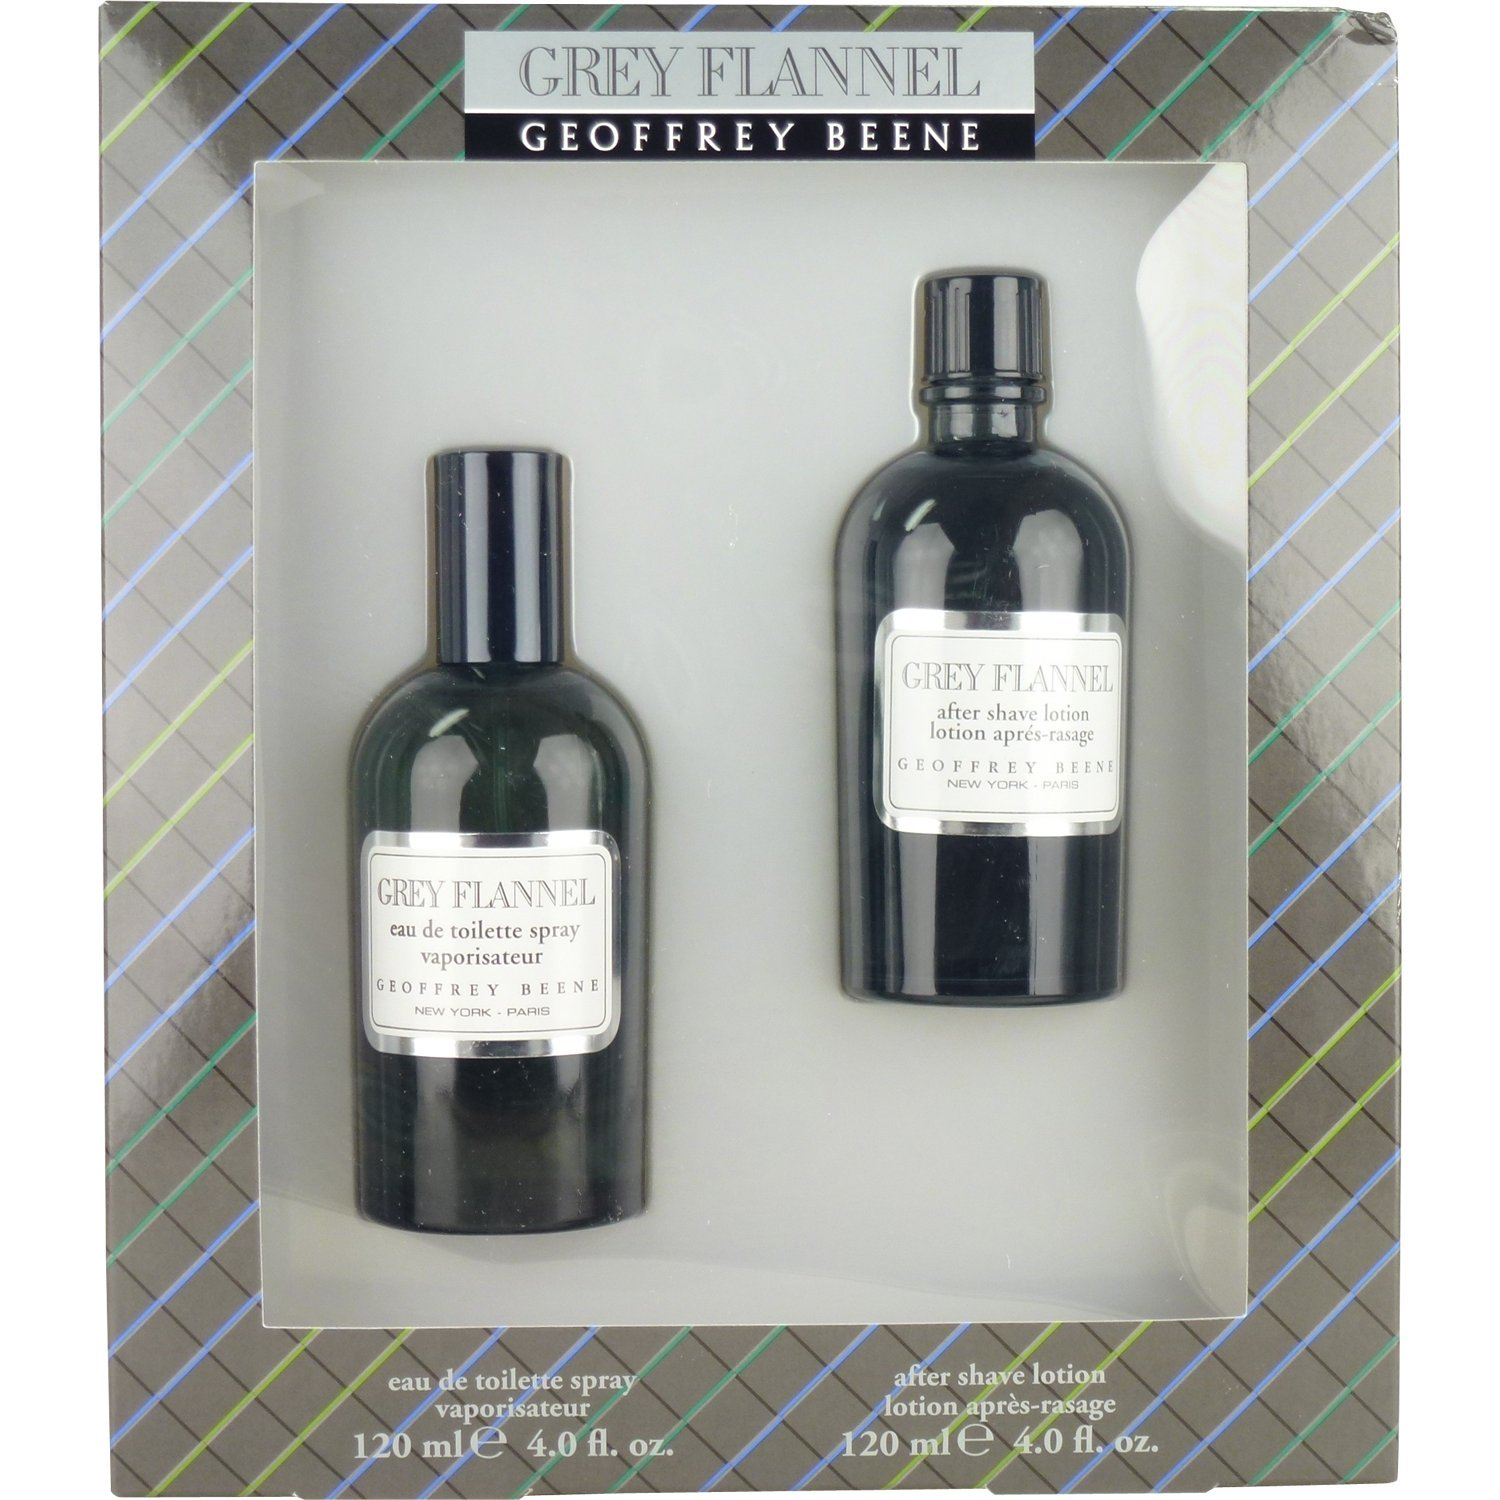 Geoffrey Beene Grey Flannel 120 ml EdT   120 ml After Shave Lotion